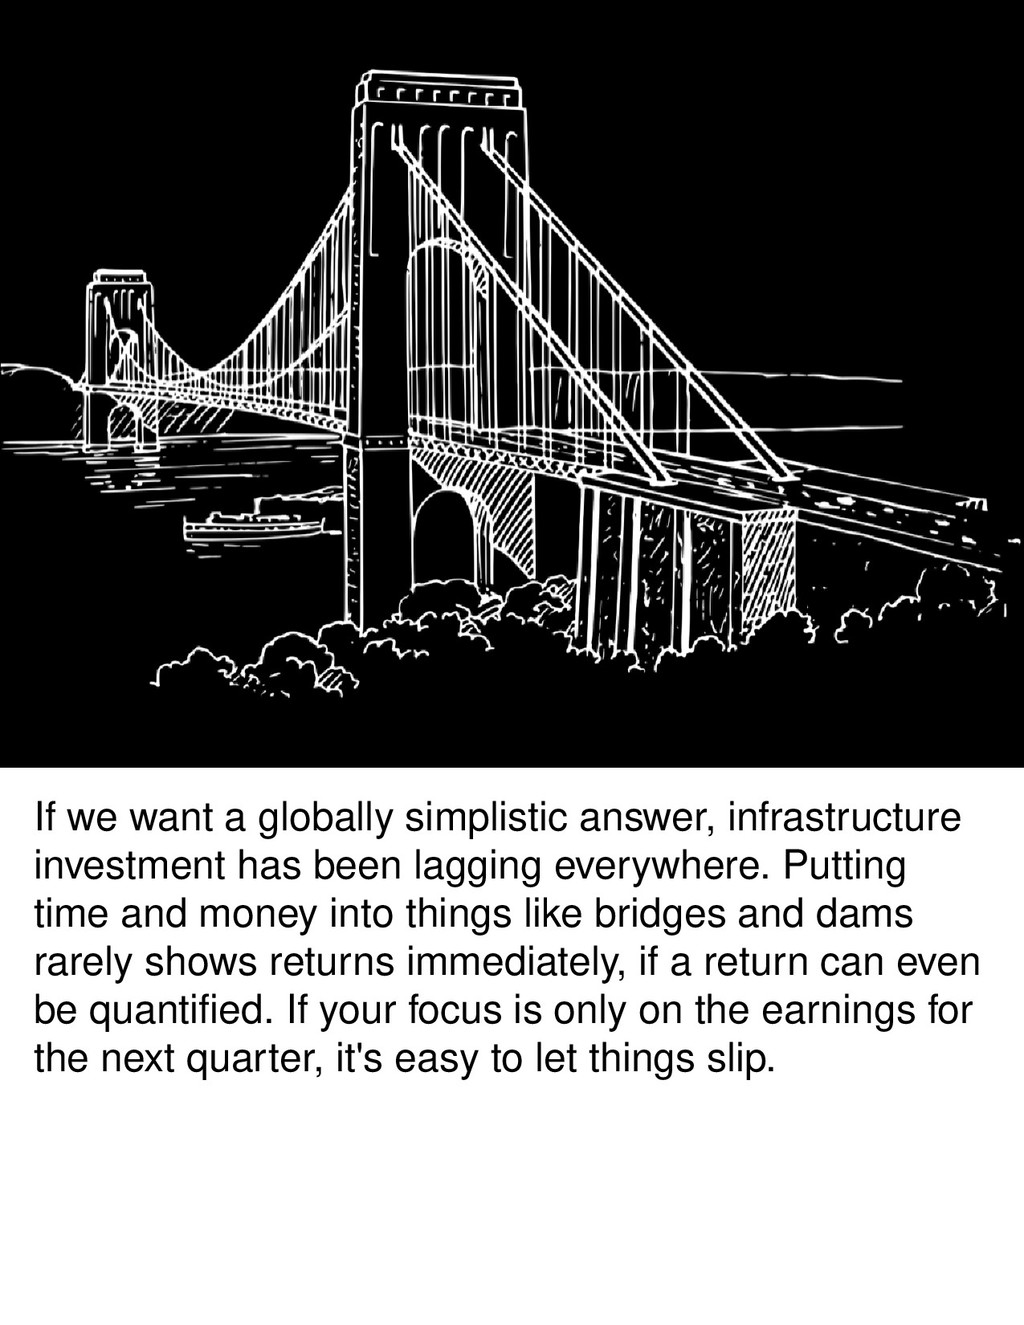 If we want a globally simplistic answer, infras...